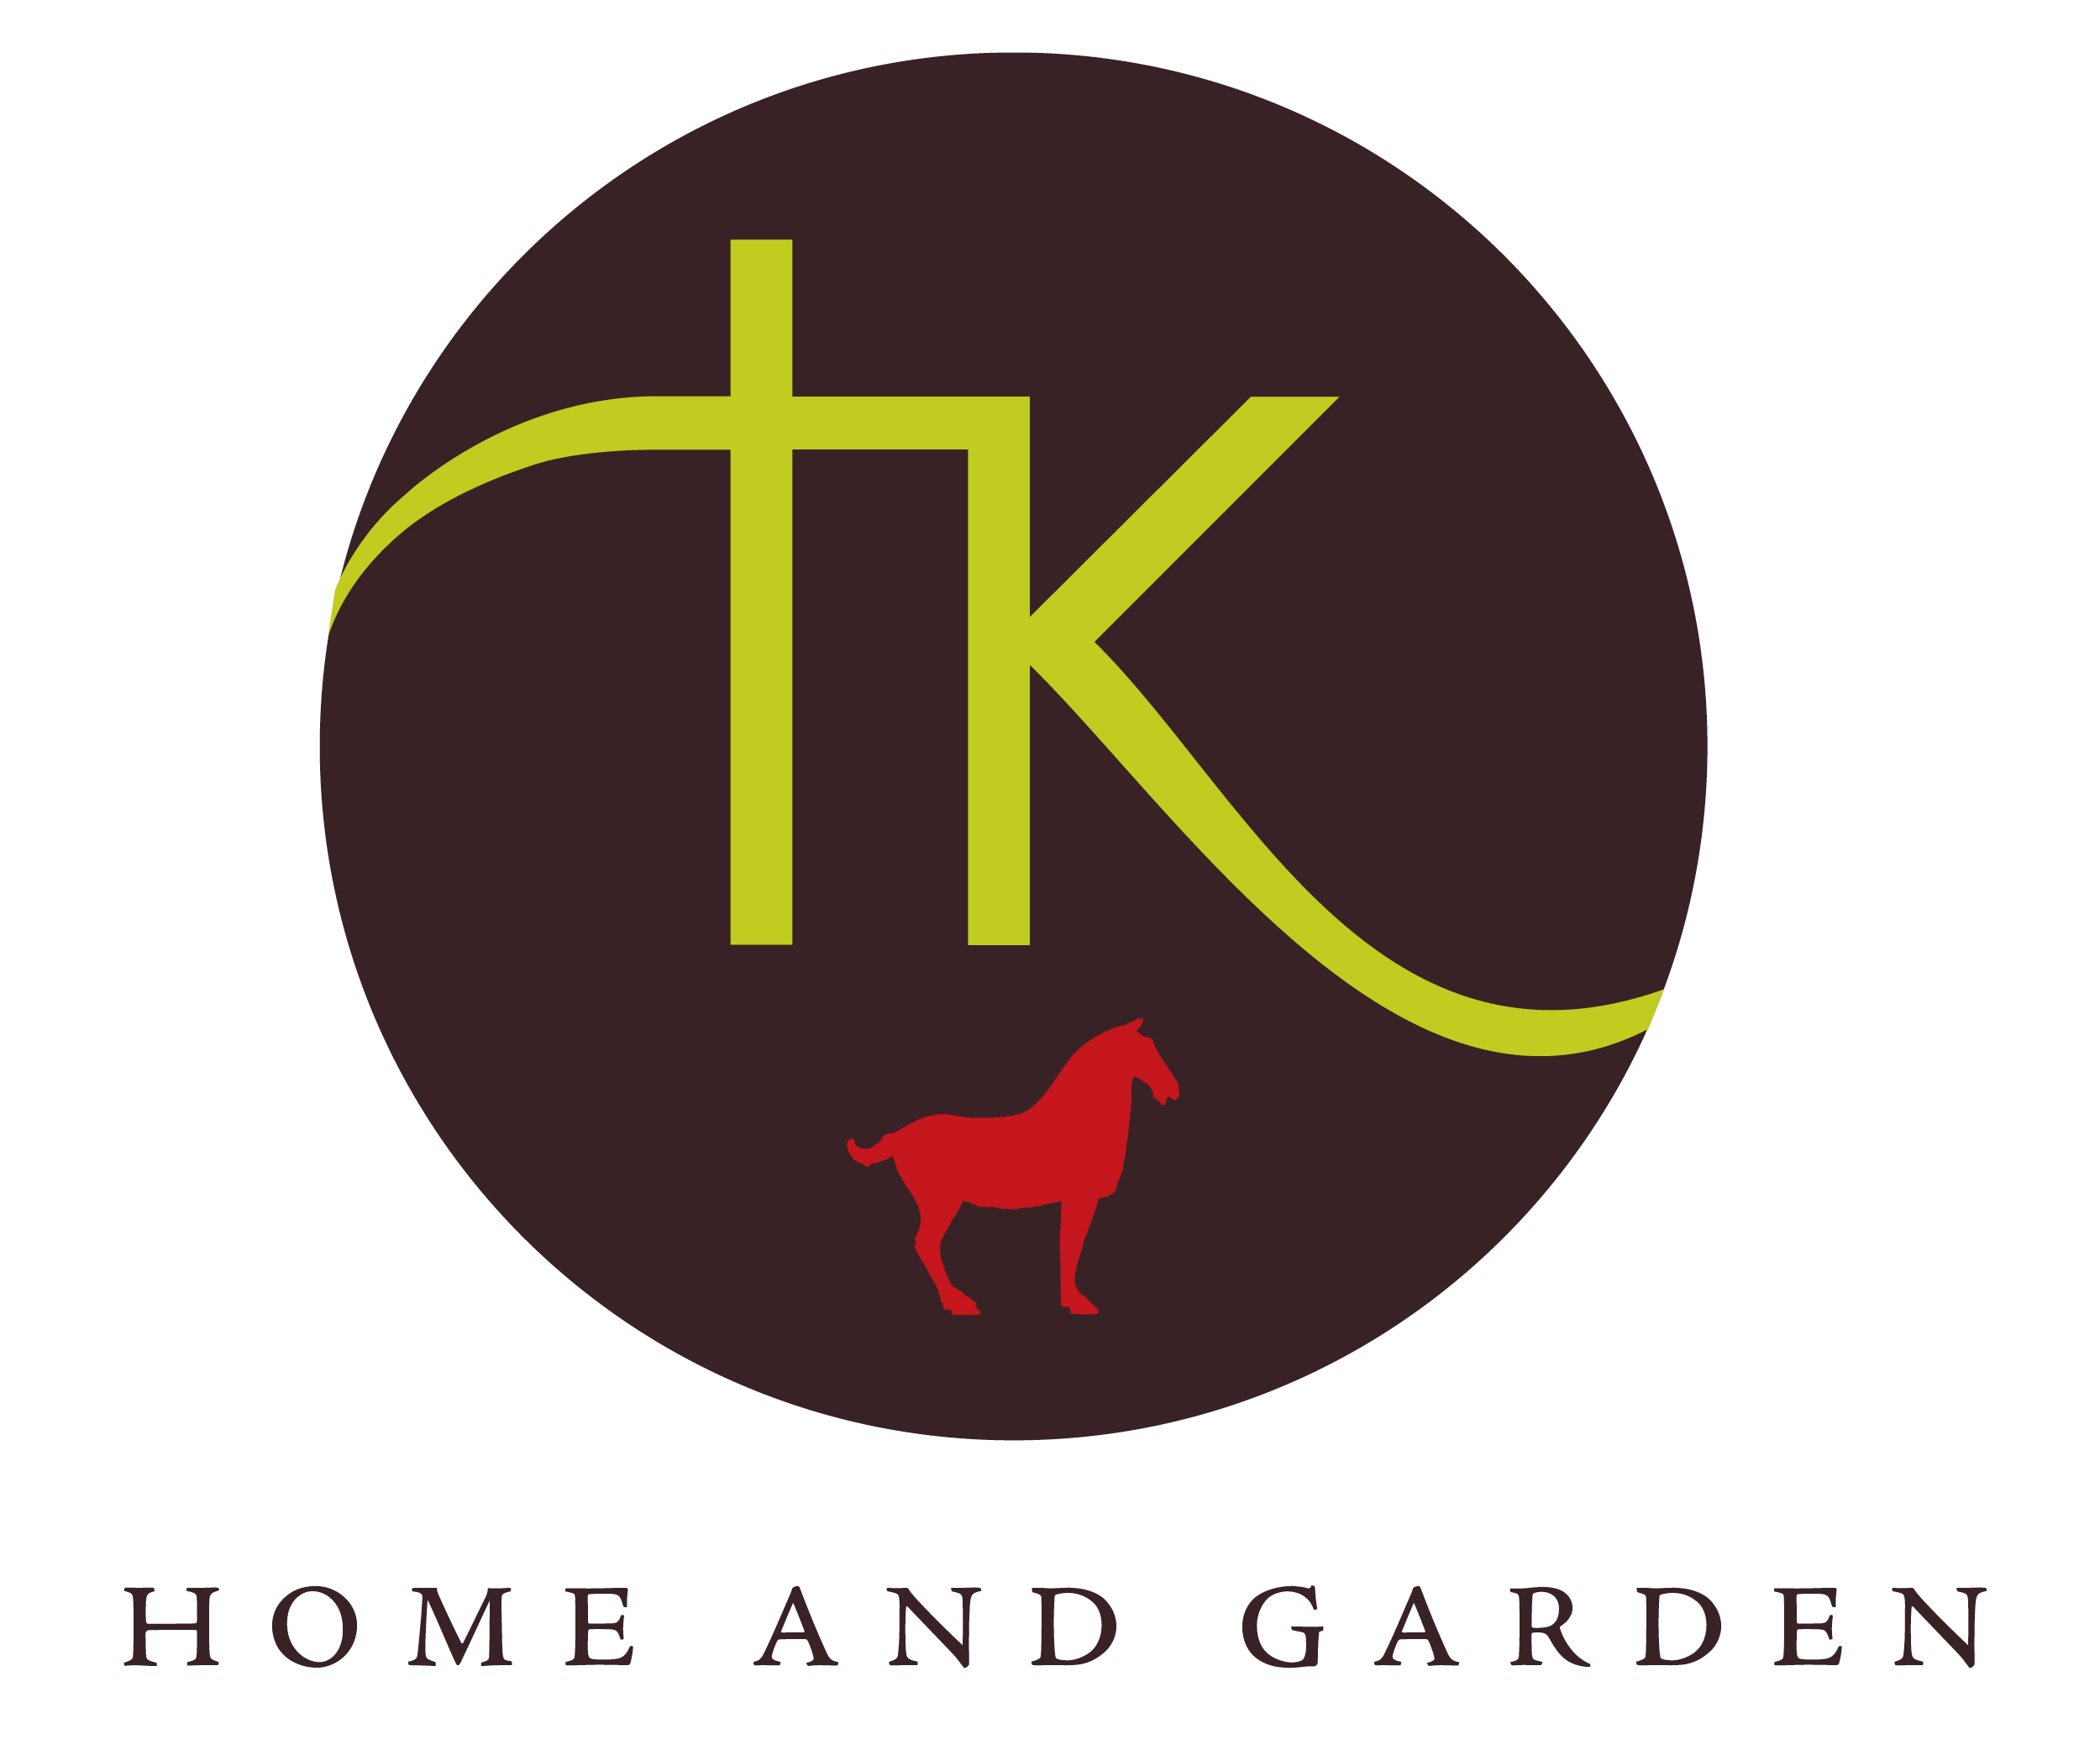 TK Home and Garden